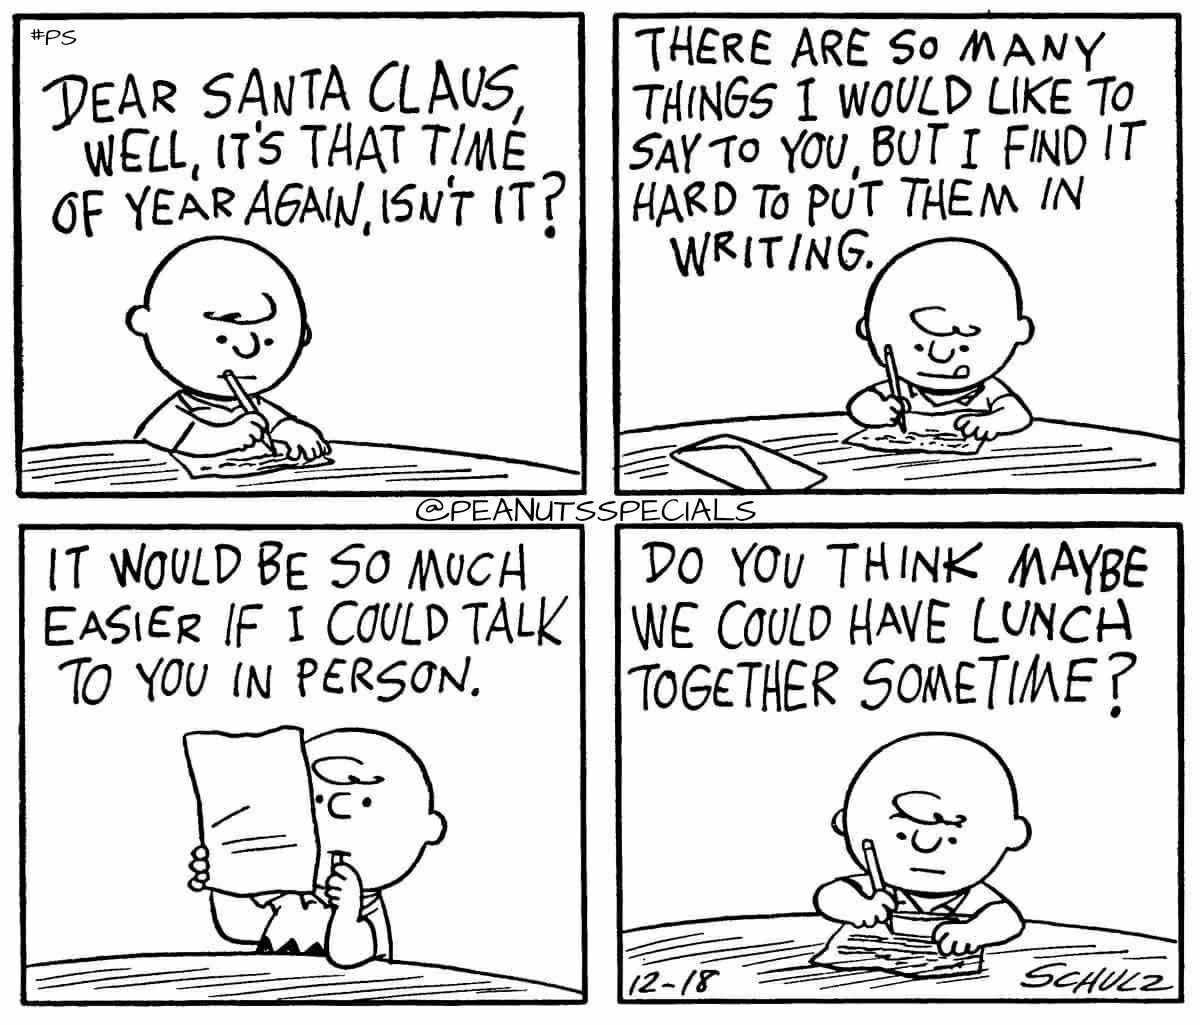 Charlie Brown asks Santa if they could have lunch together sometime ...